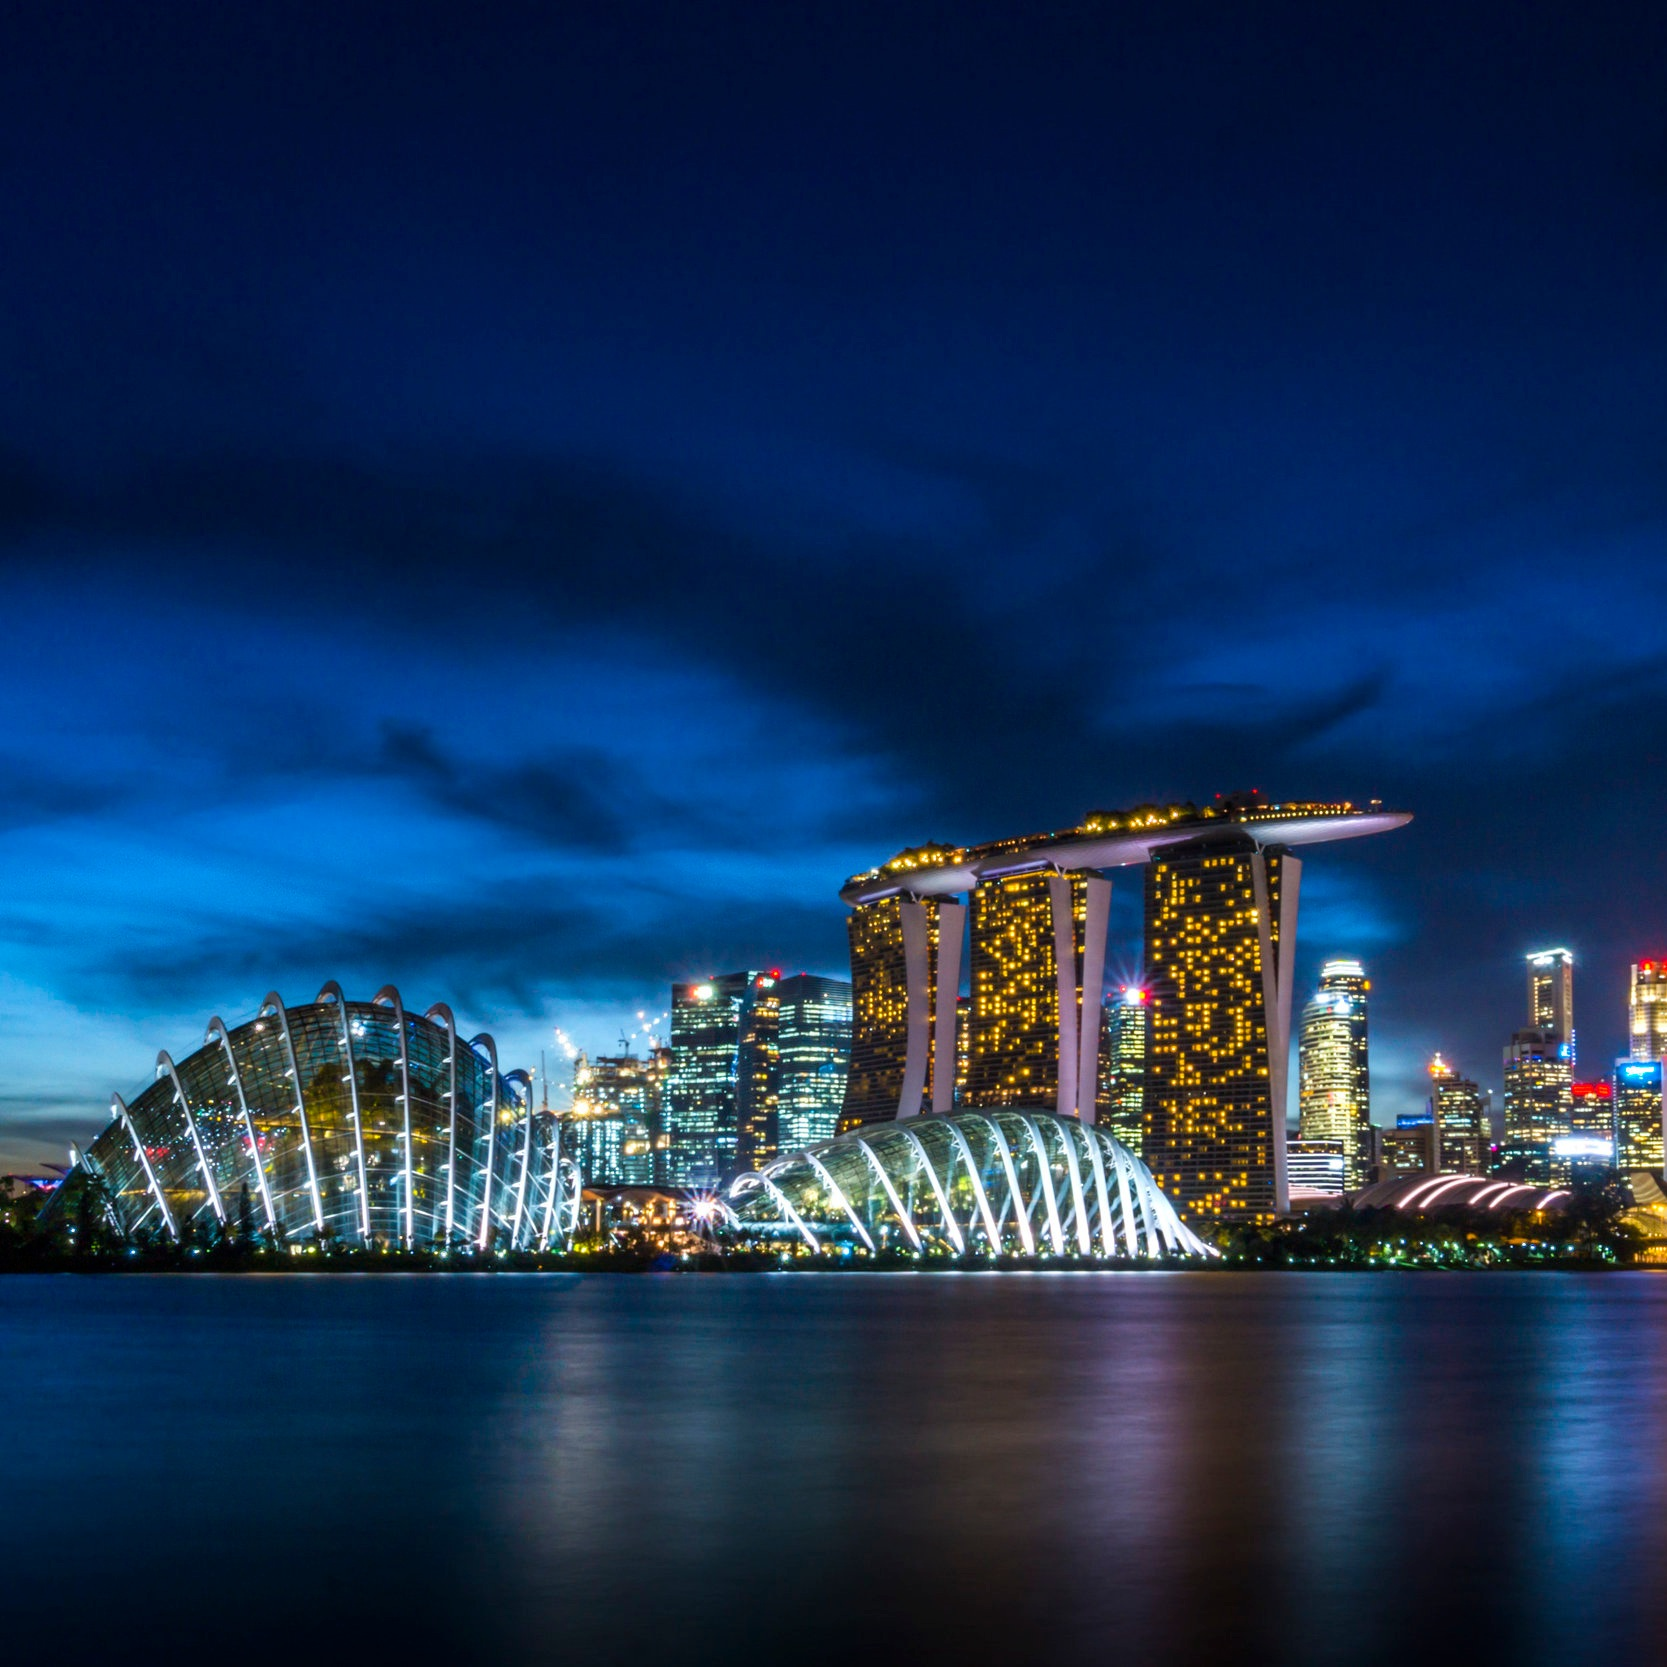 FEBRUARY 24, 2016 SINGAPORE - US EB-5 IMMIGRATION BY INVESTMENT SEMINAR